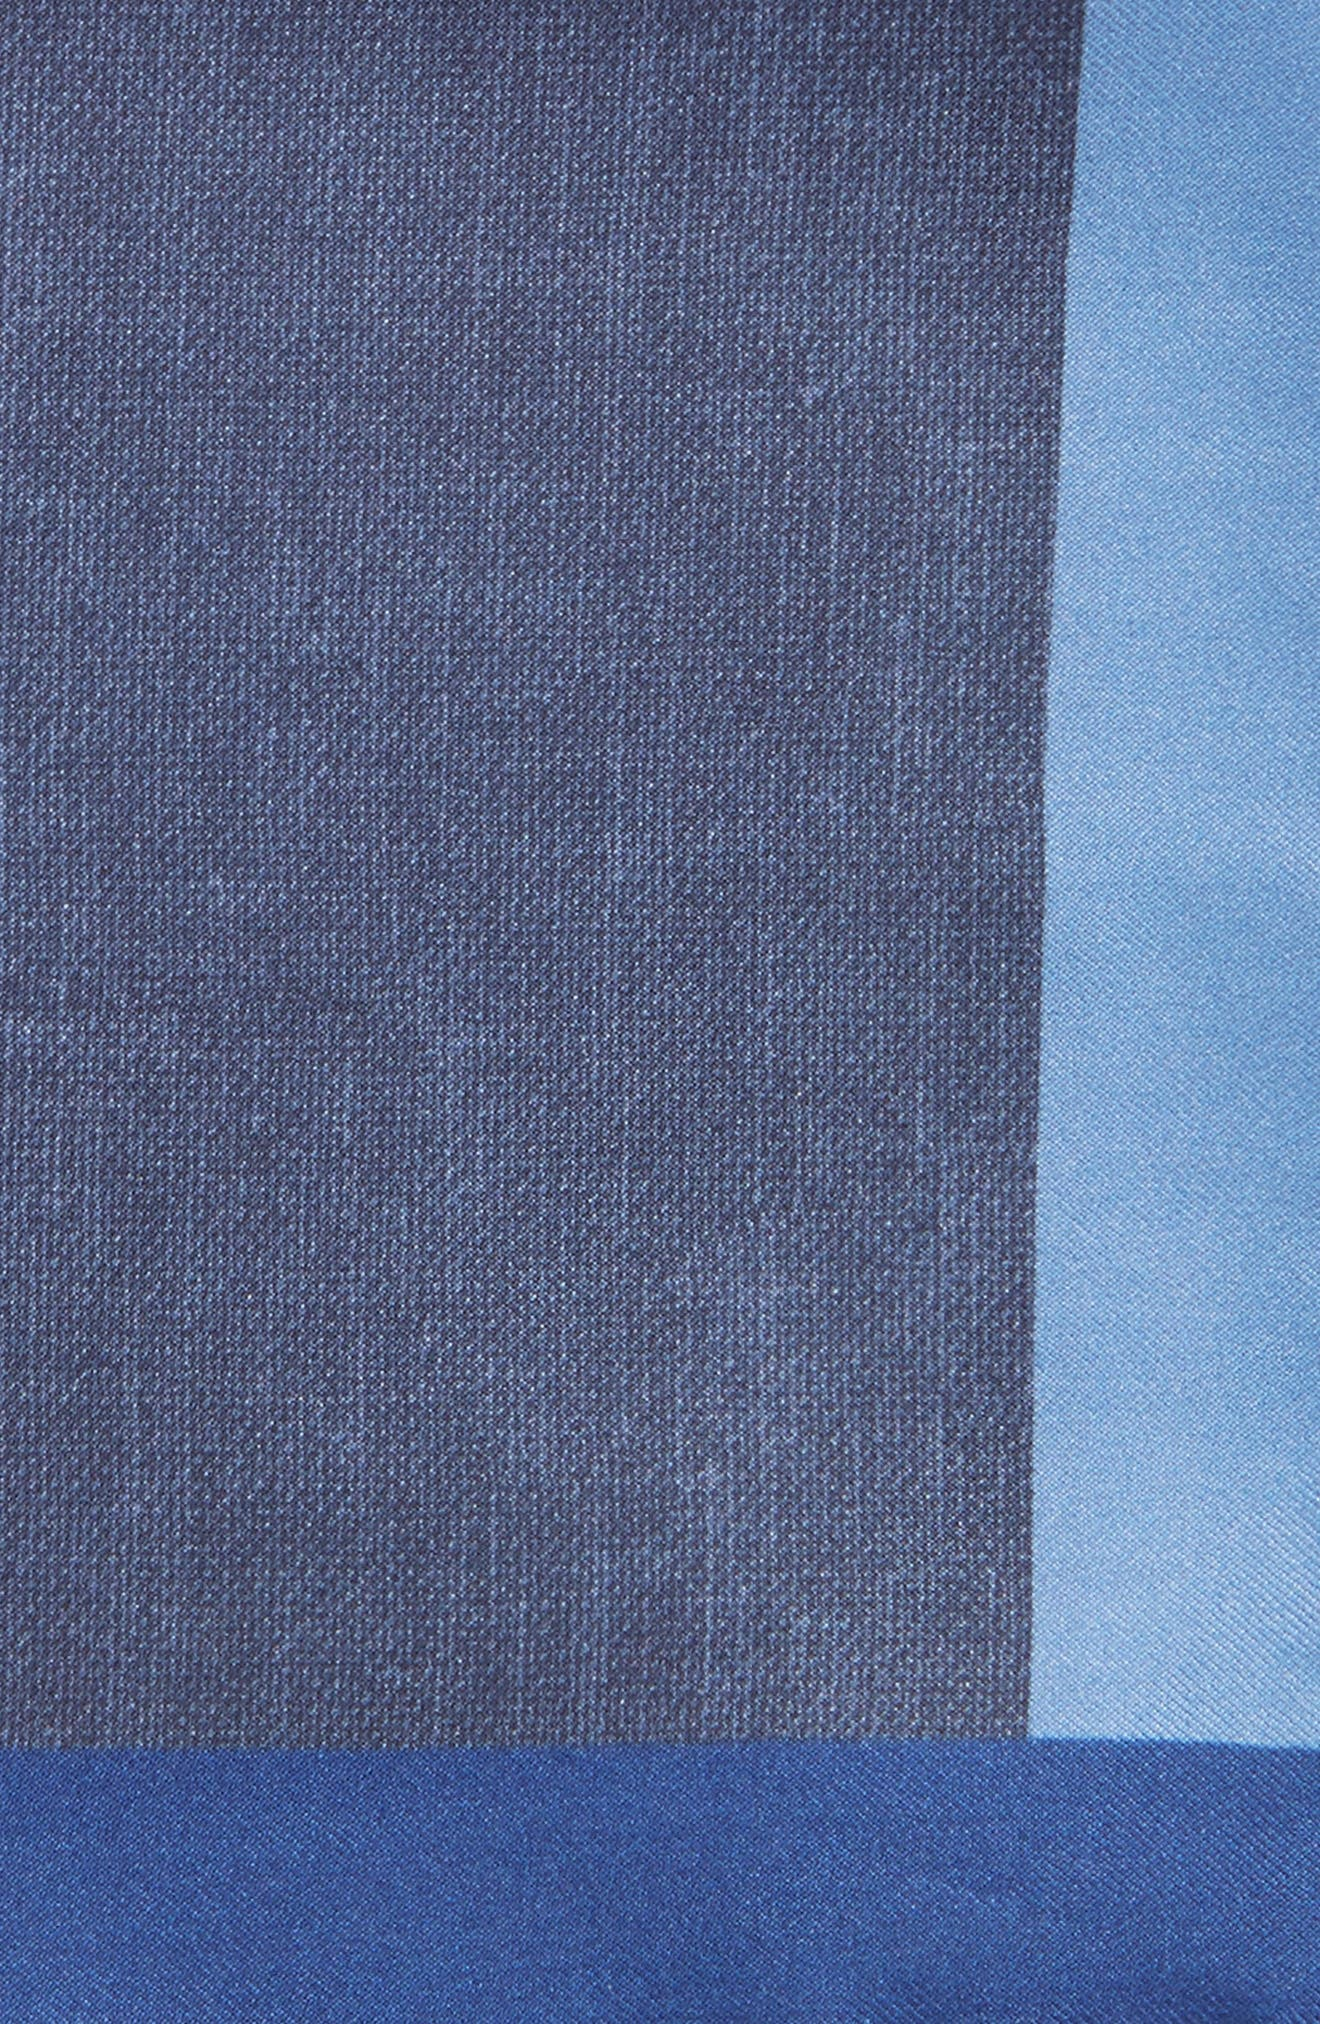 Nordstrom x BOSS Exclusive Silk Pocket Square,                             Alternate thumbnail 3, color,                             403